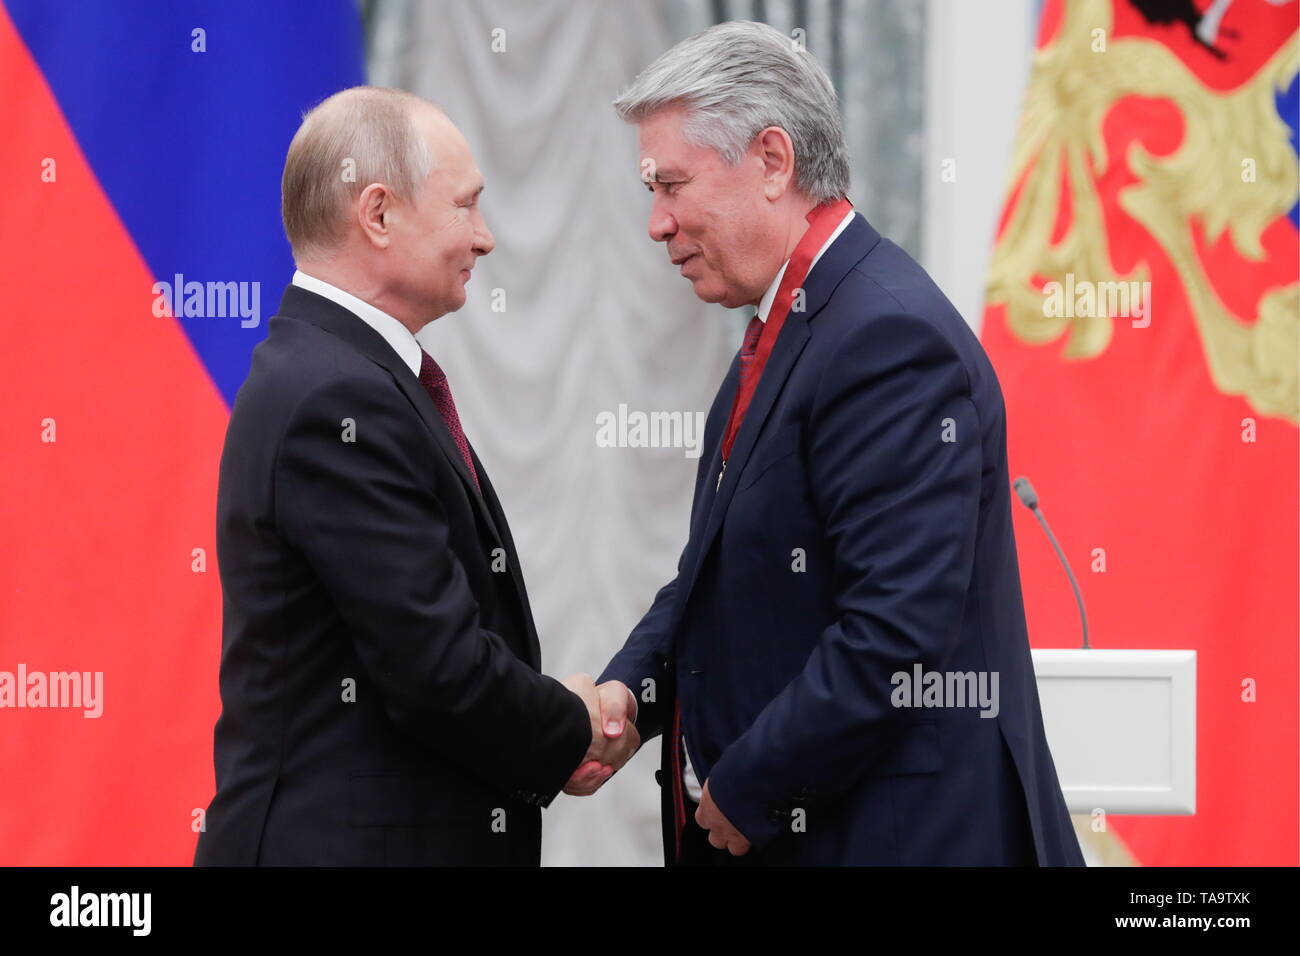 Moscow, Russia. 23rd May, 2019. ATTENTION EDITORS! IN PHOTOS TS0AC6BC, TS0AC6BD DATED MAY 23, 2019 THE CAPTION INCORRECTLY NAMED THE PERSON CORRECTED CAPTION FOLLOWS: MOSCOW, RUSSIA - MAY 23, 2019: Russia's President Vladimir Putin (L) awards an Order III class For Merit to the Fatherland to Mikhail Eskindarov, Rector of the Russian Government Financial University, during a ceremony to present state decorations at the Moscow Kremlin. Mikhail Metzel/TASS WE REGRET ANY INCONVENIENCE Credit: ITAR-TASS News Agency/Alamy Live News - Stock Image